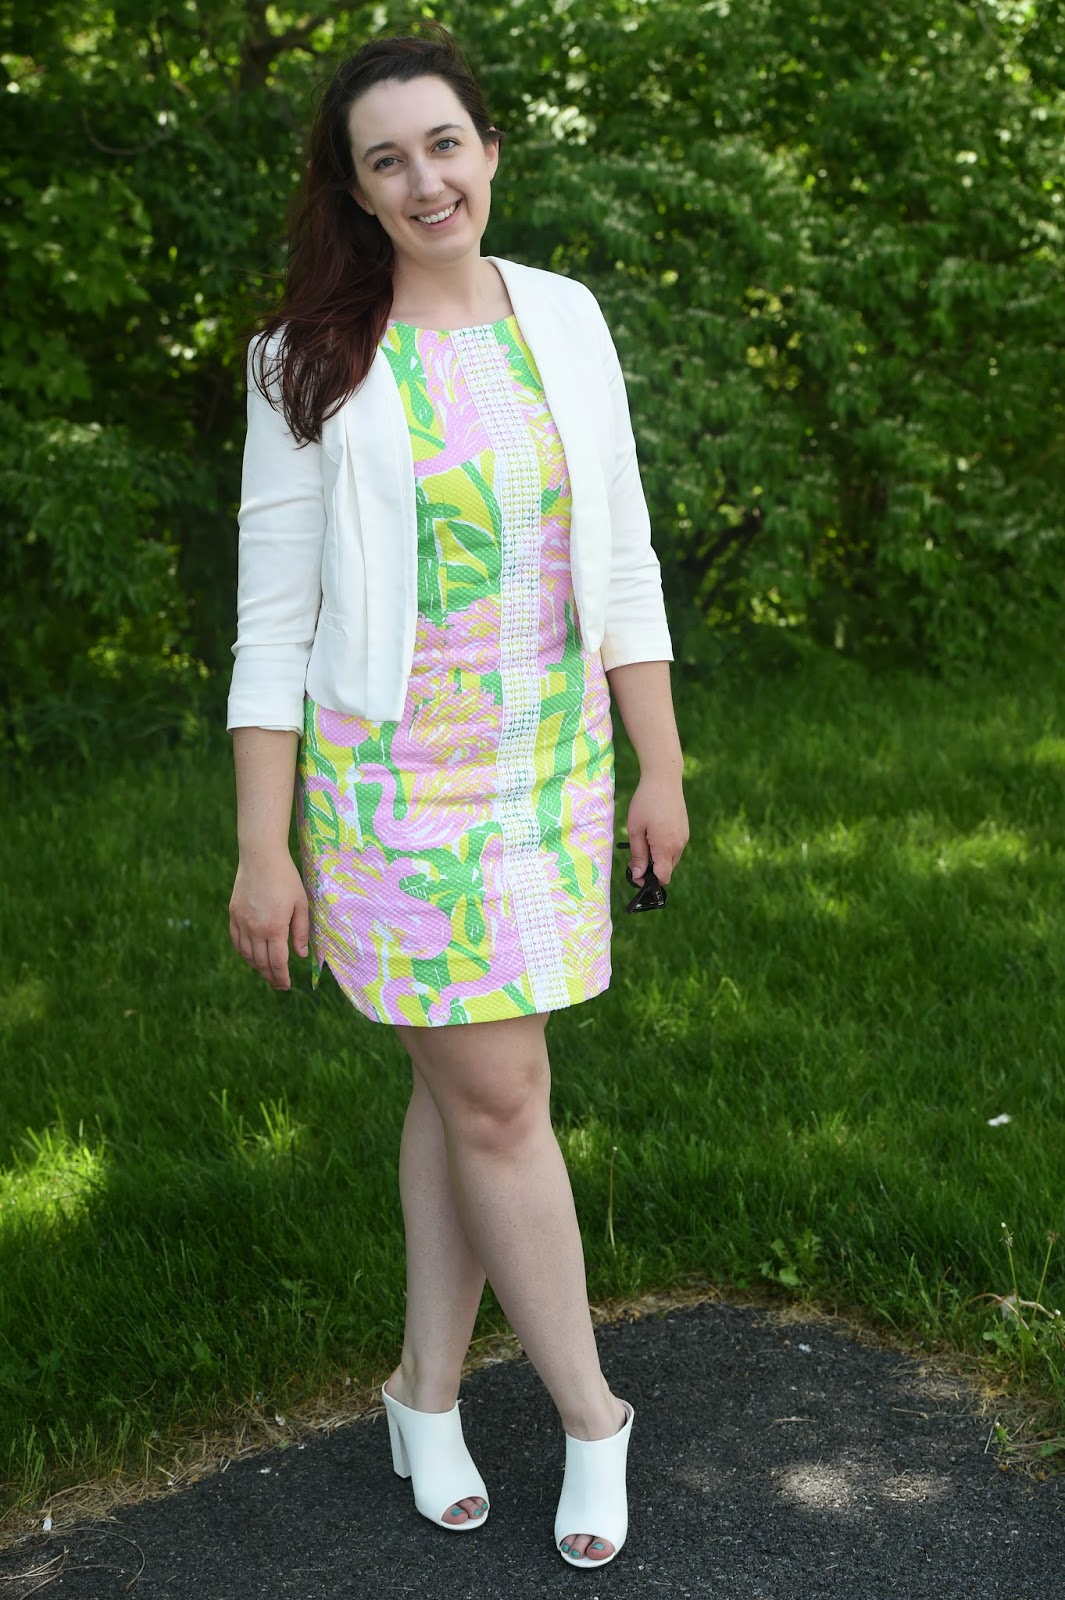 Style, Samantha Chic, Lilly Pultizer, Lilly for Target, Forever 21, white blazer, mules, shift dress, Spring dresses, summer dress, Gin Blossoms, Charlotte, South Carolina, Fury, Carowinds, Disney World, ray-ban